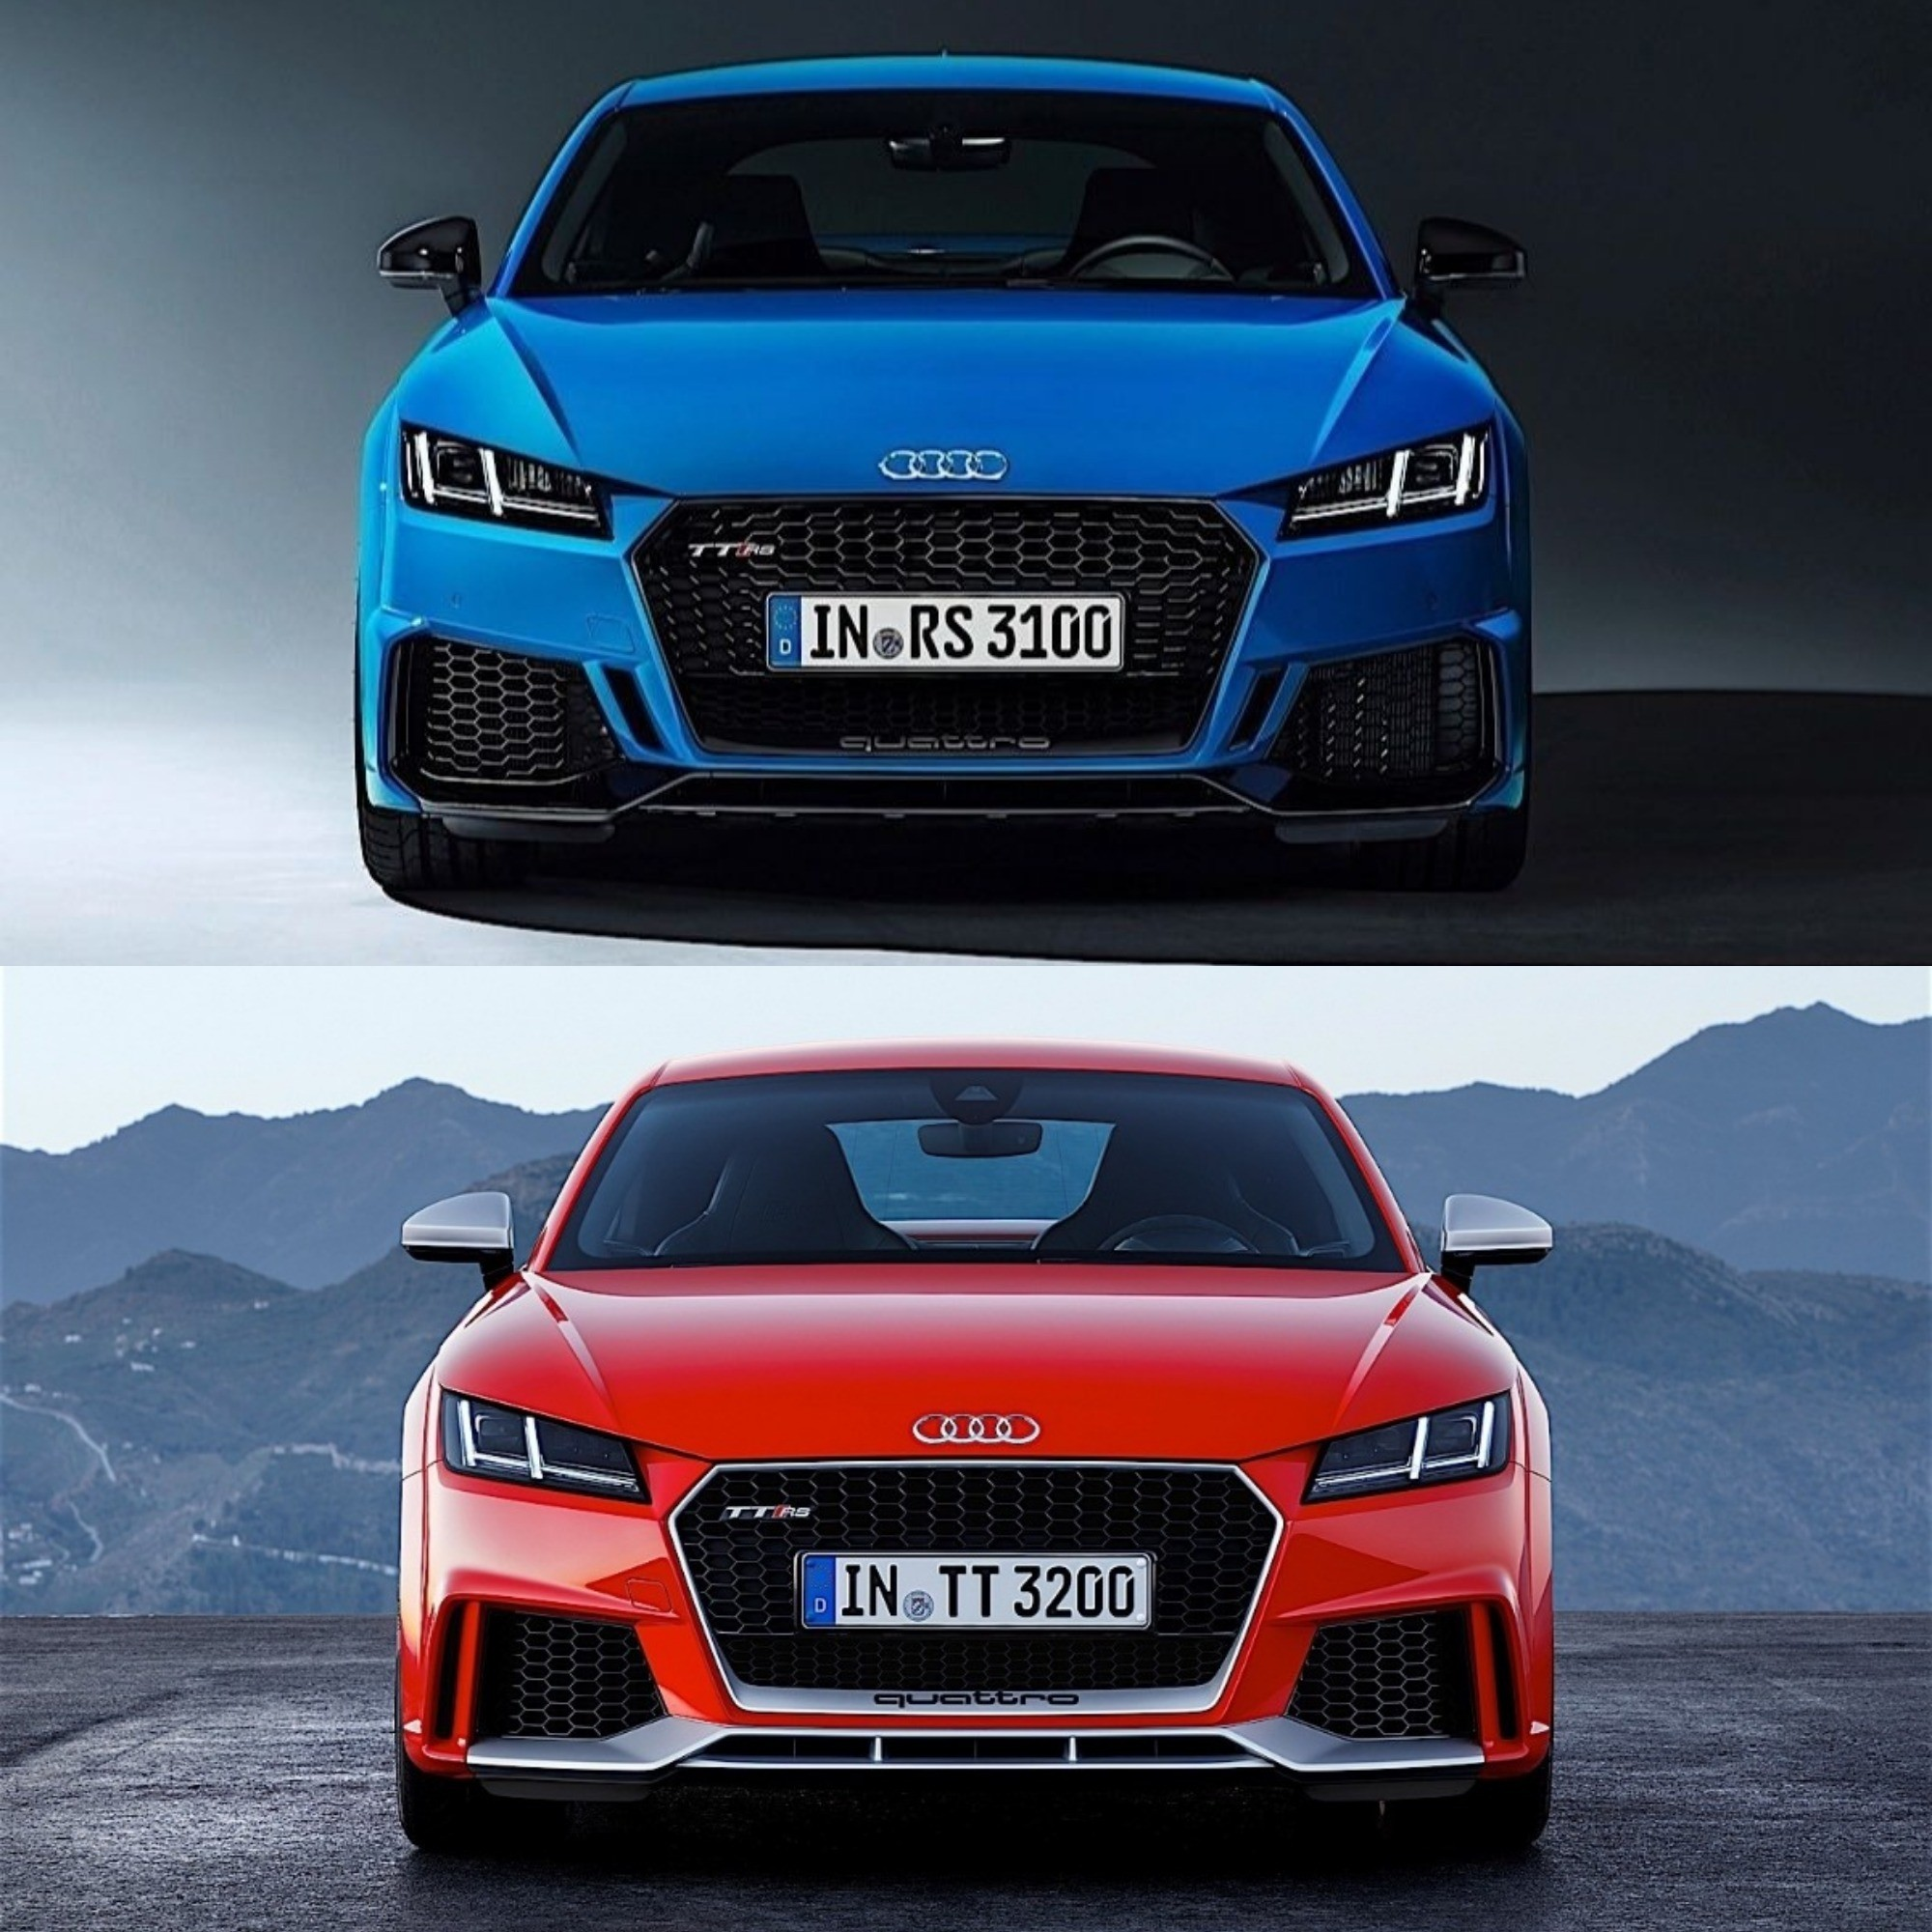 Photo Comparison: 2020 Audi TT RS Vs. 2016 Audi TT RS